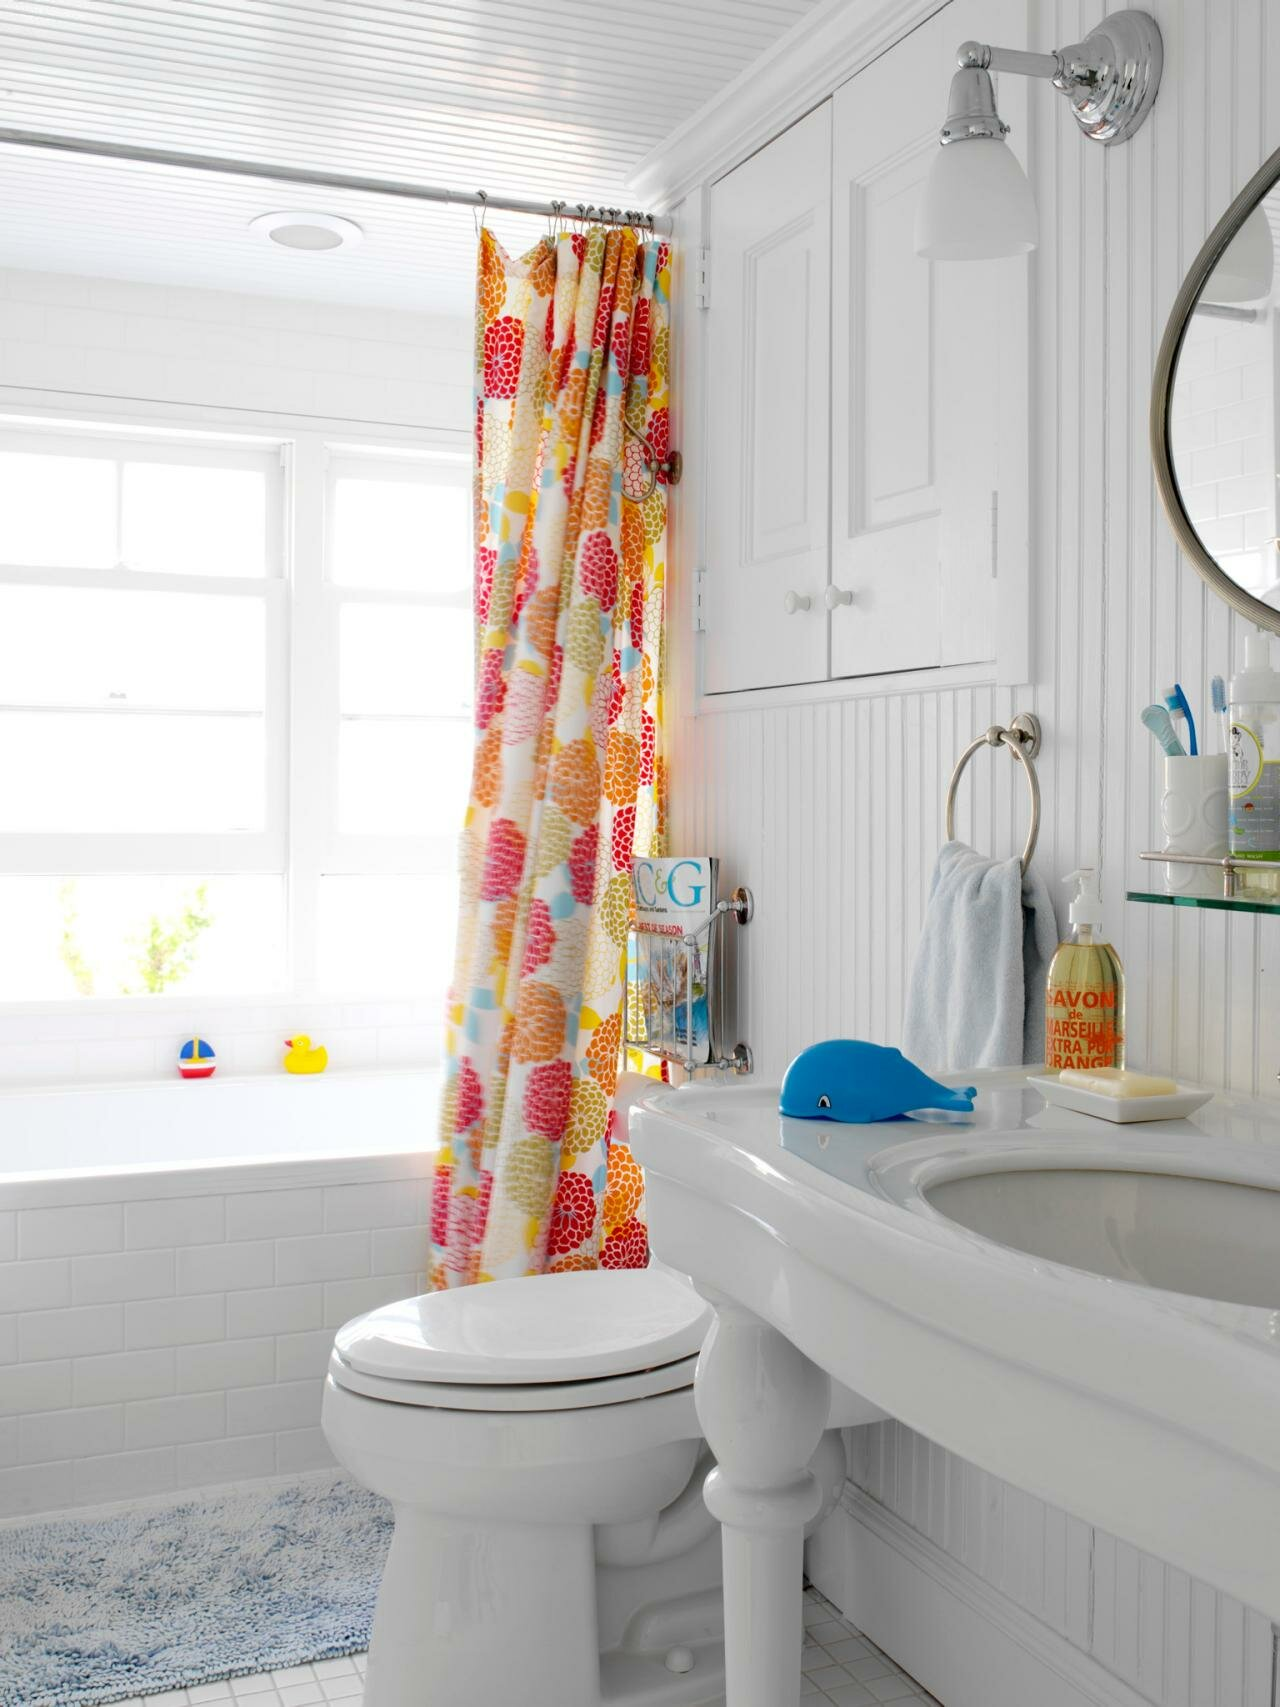 Shower Curtain Rods Walmart | Shower Curtain Hooks Walmart | Walmart Shower Curtain